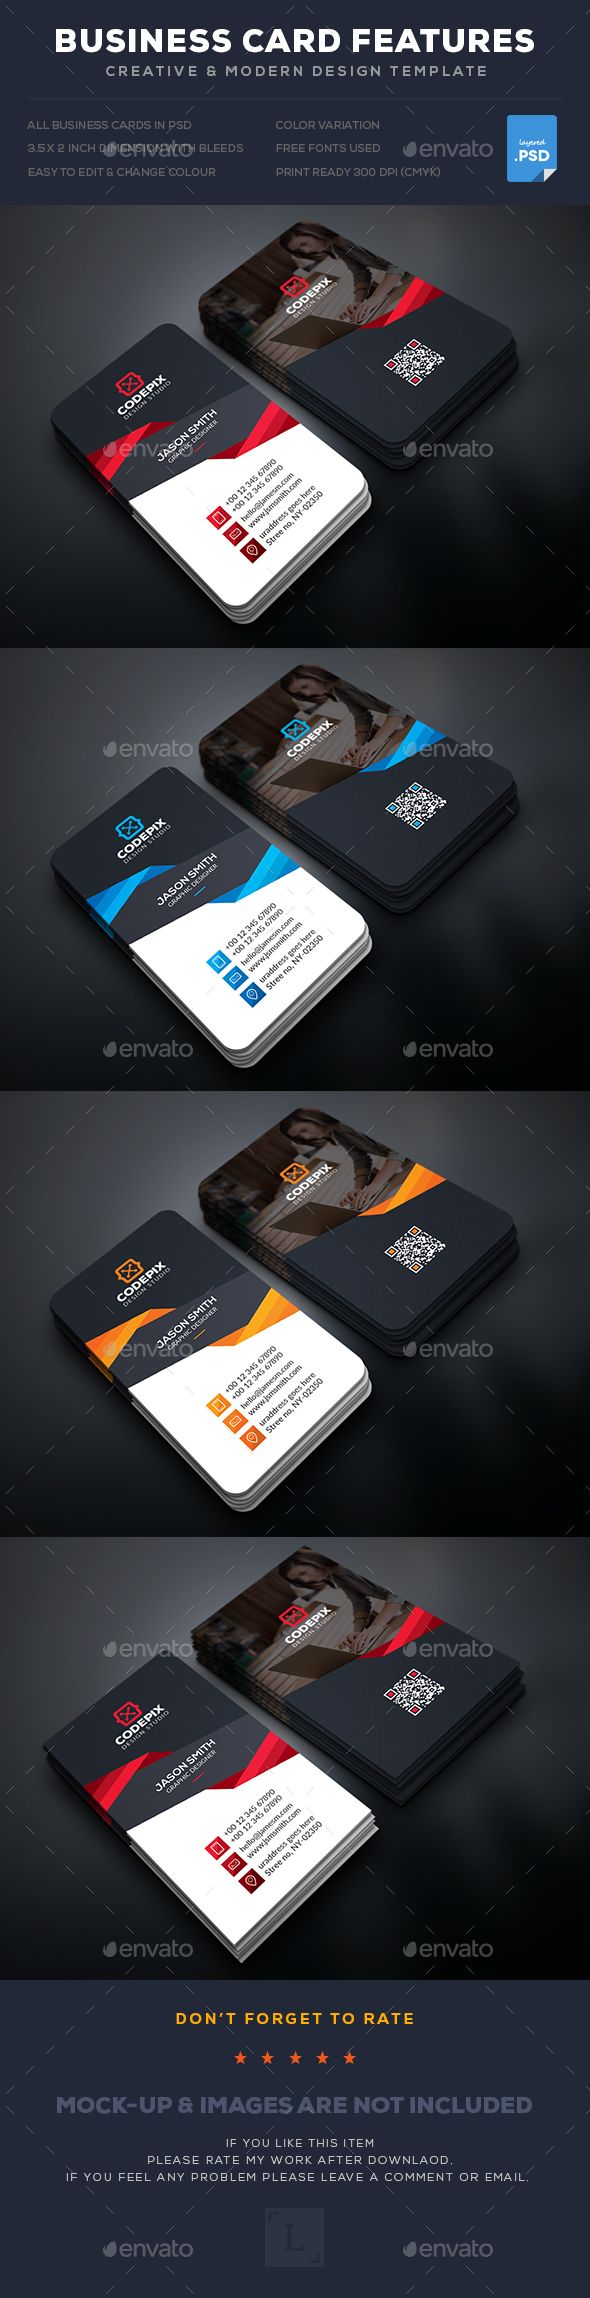 170 best DESIGN || Business cards images on Pinterest | Business ...